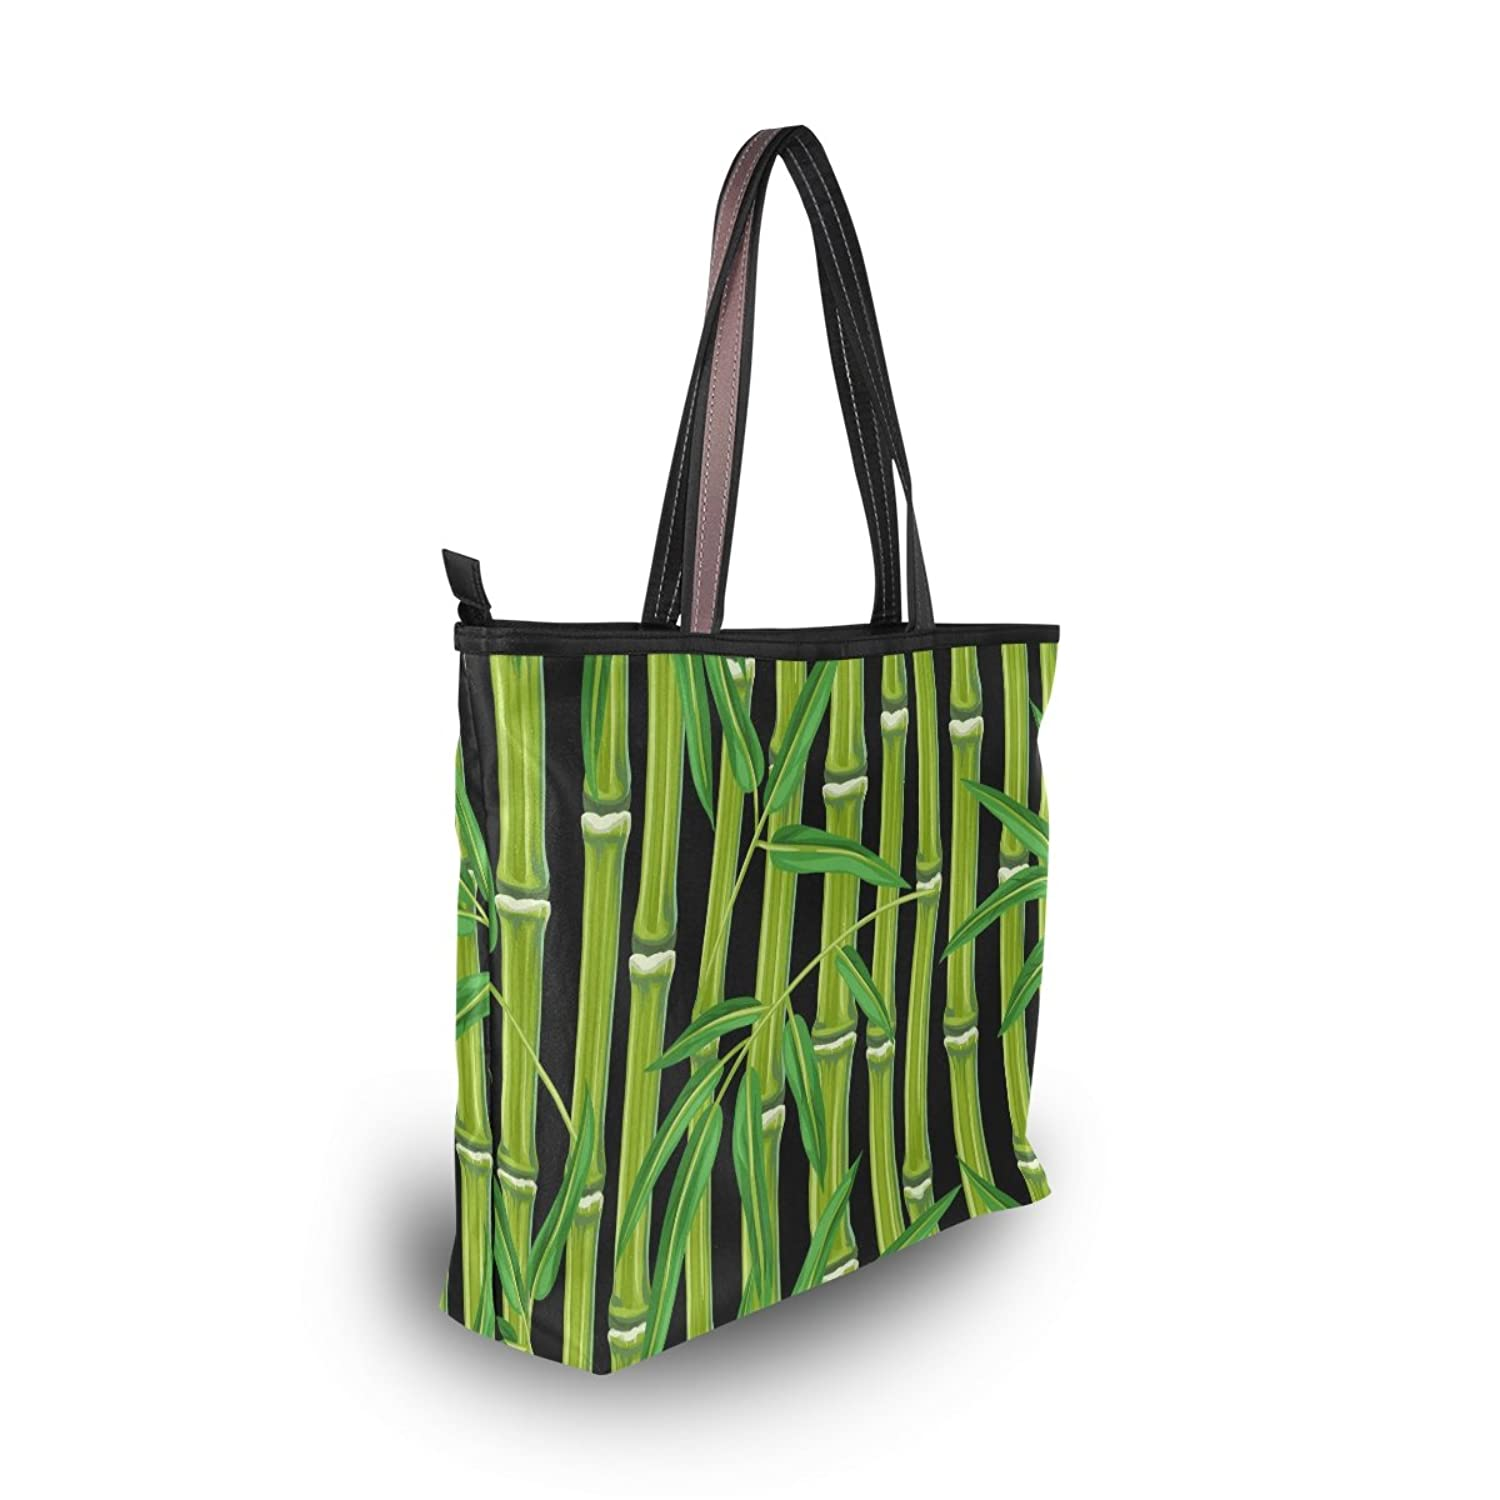 Senya Women's Handbag Microfiber Large Tote Shoulder Bag, Bamboo Pattern